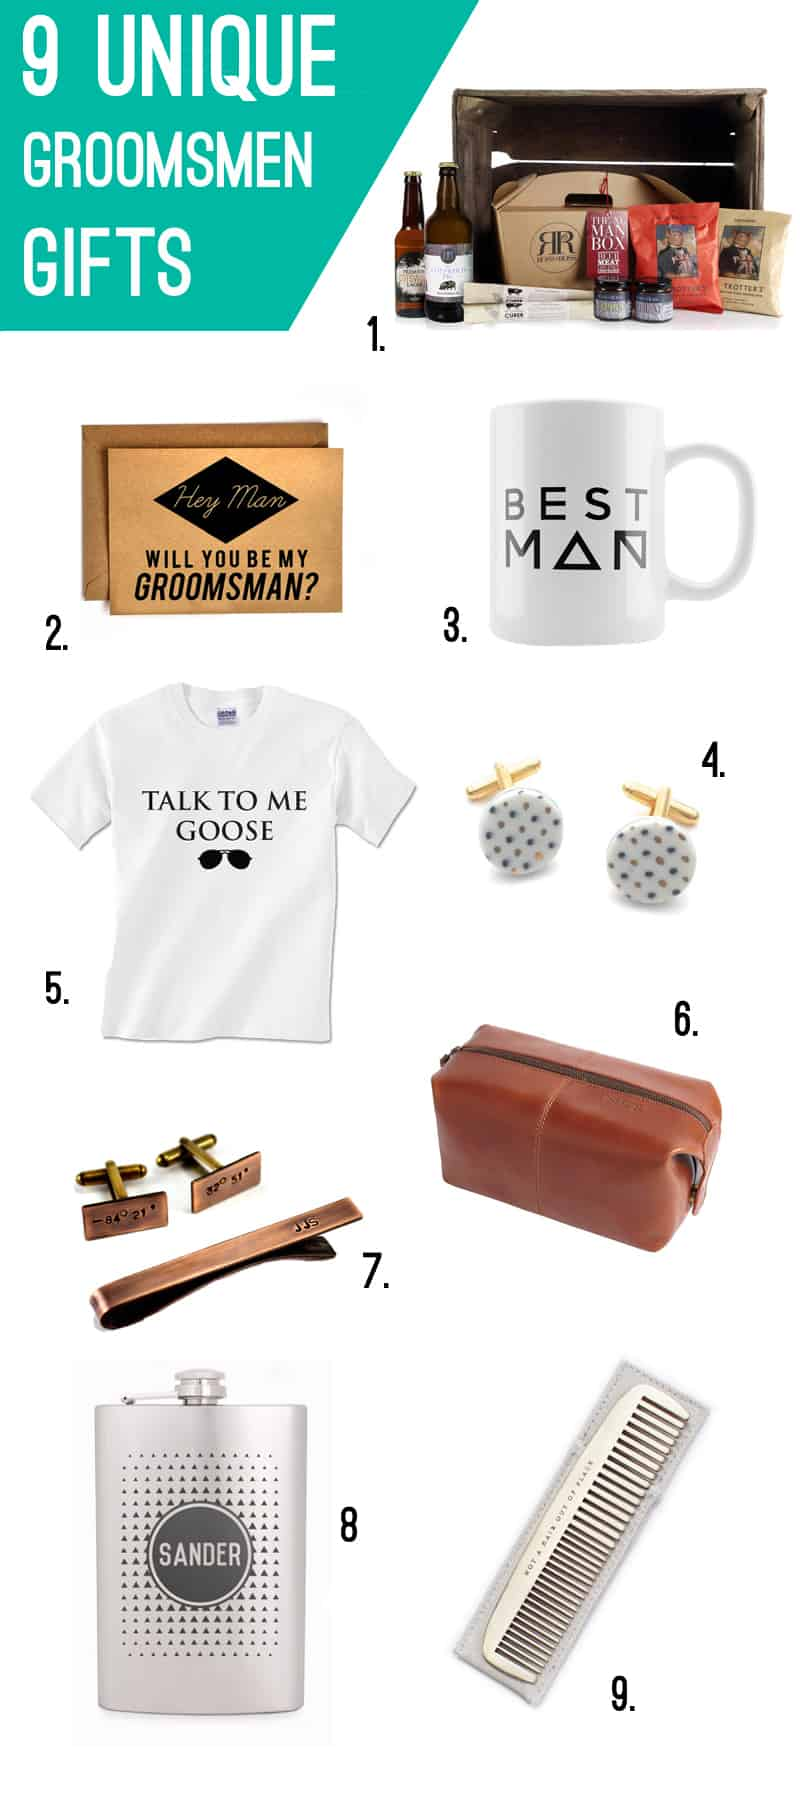 Unique Wedding Gifts For Groomsmen: 9 UNIQUE GIFTS FOR GROOMSMEN